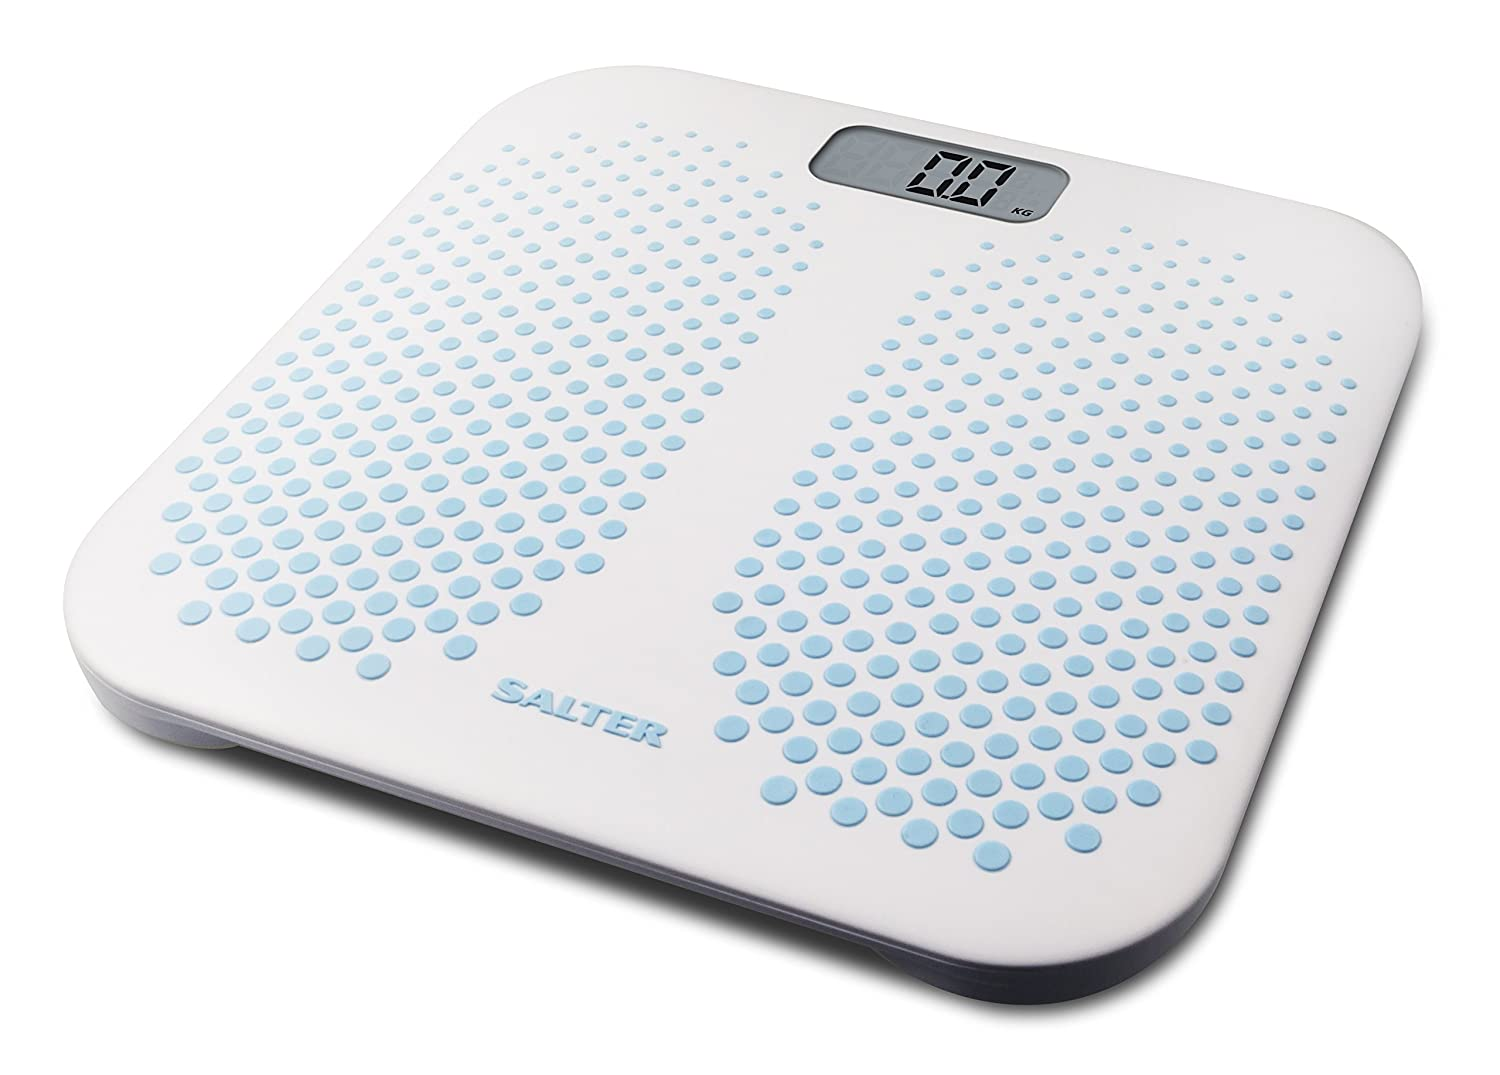 Salter Anti-Slip Digital Bathroom Scales – Large Textured Rubber Platform, High Capacity Weighing Scale with Carpet Feet, Step-On for Instant Weight Reading, Batteries Included, 15 Year Guarantee FKA Brands Ltd 9096 BL3R